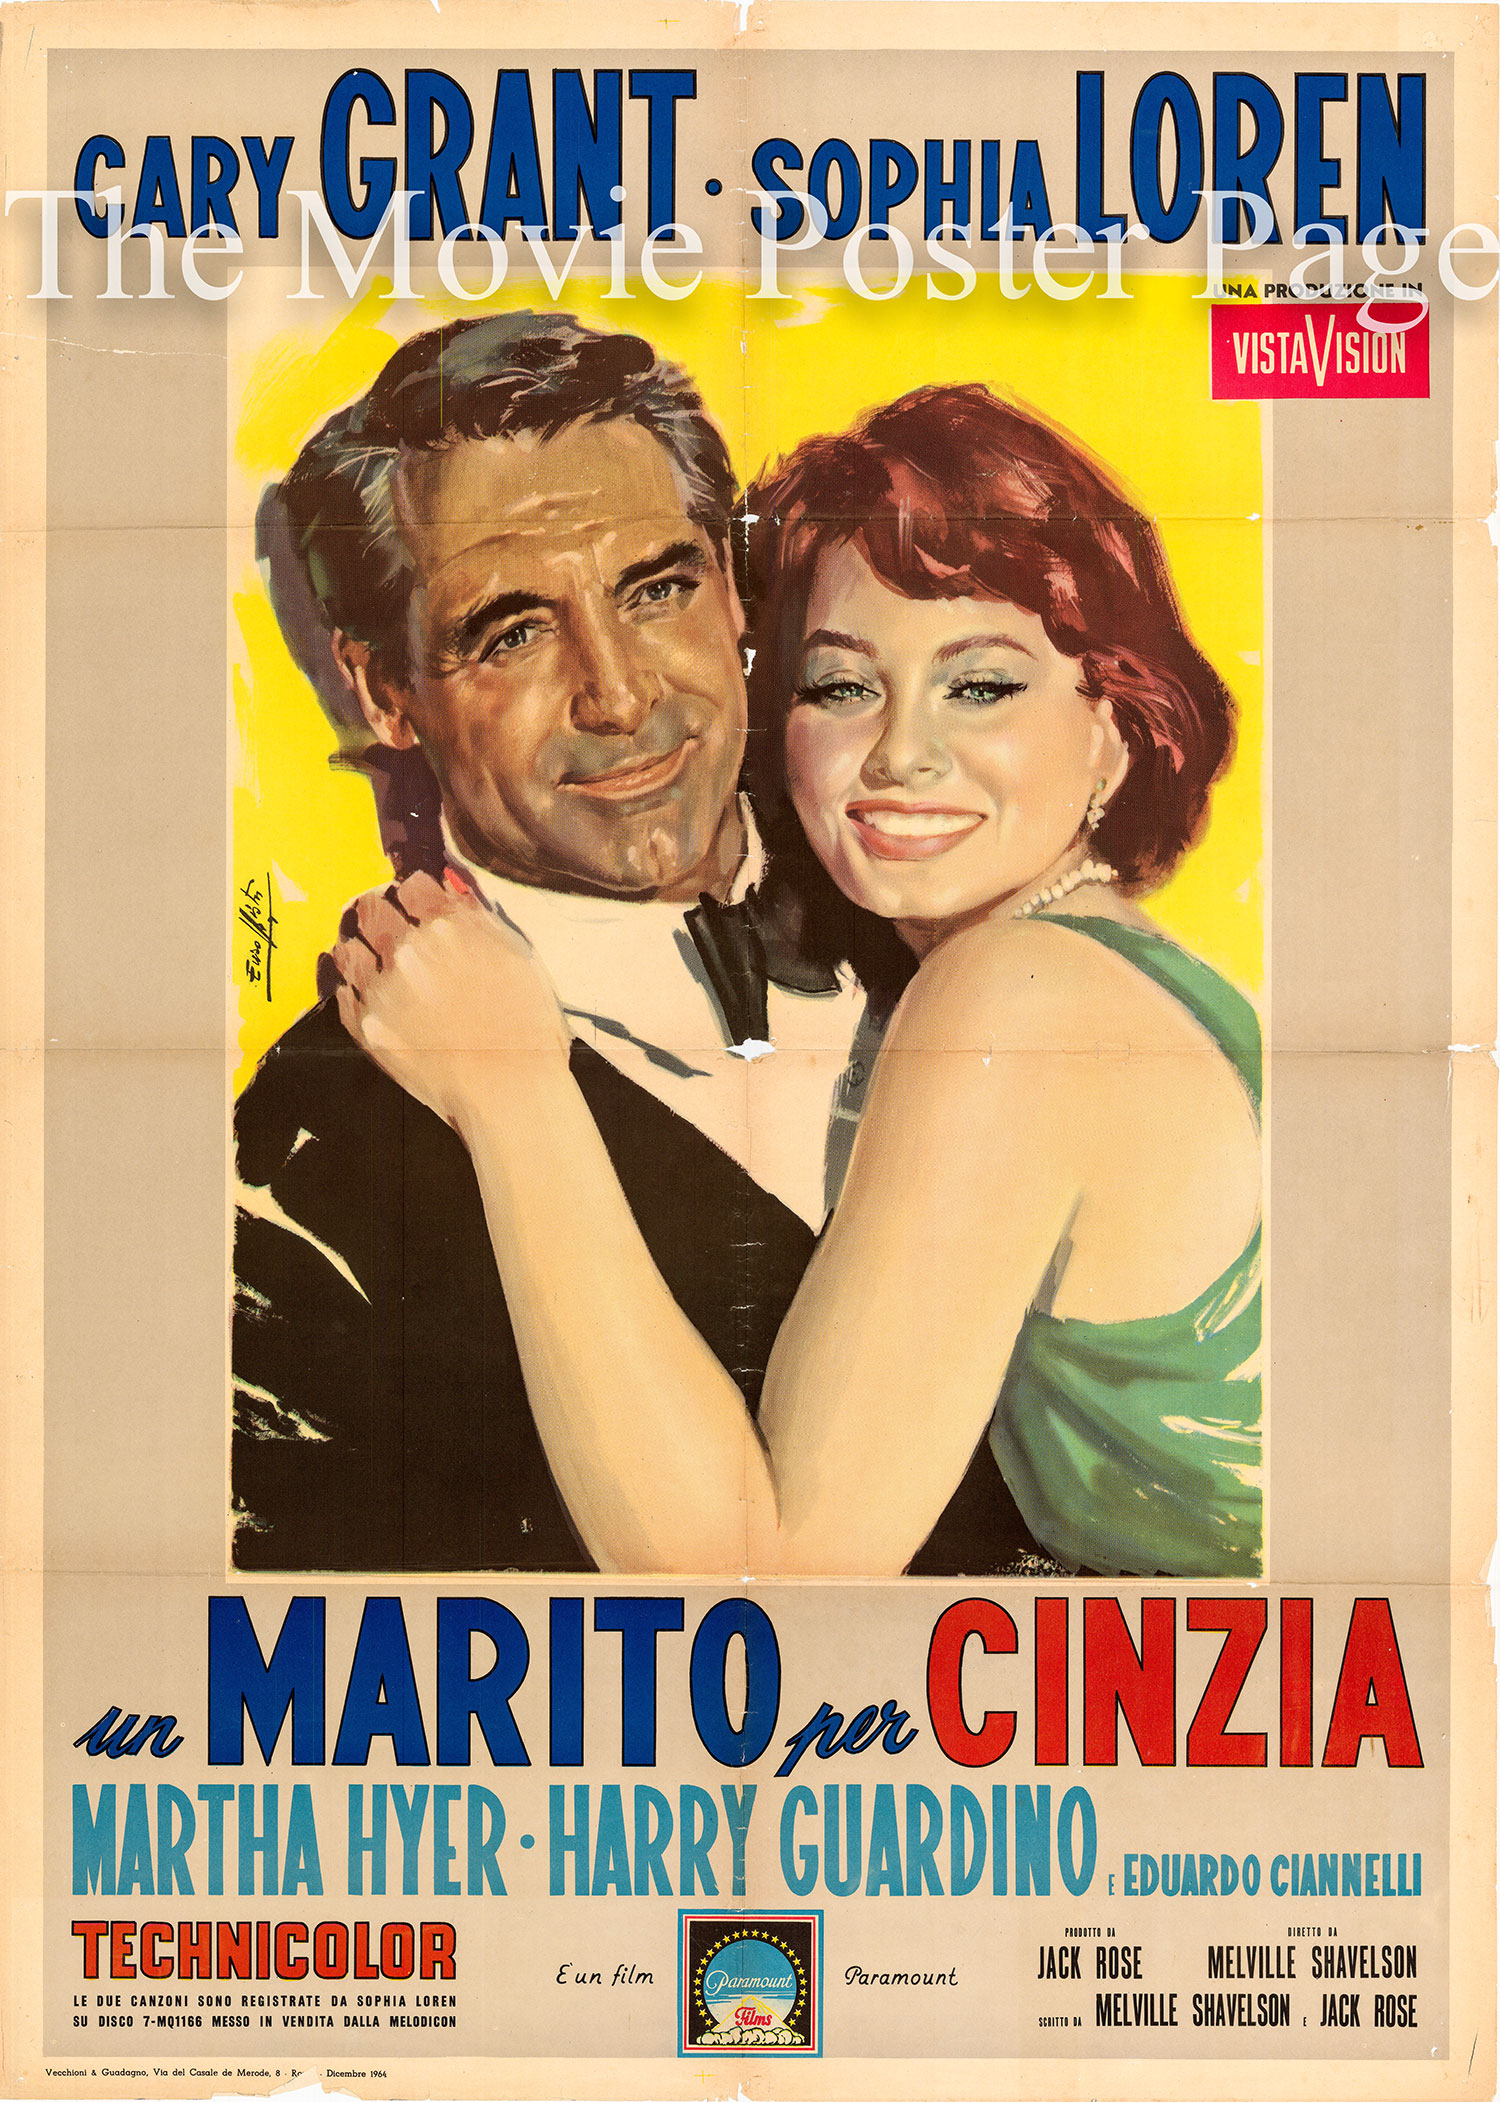 Pictured is the Italian two-sheet promotional poster for the 1958 Melville Shavelson film Houseboat, starring Cary Grant and Sophia Loren.